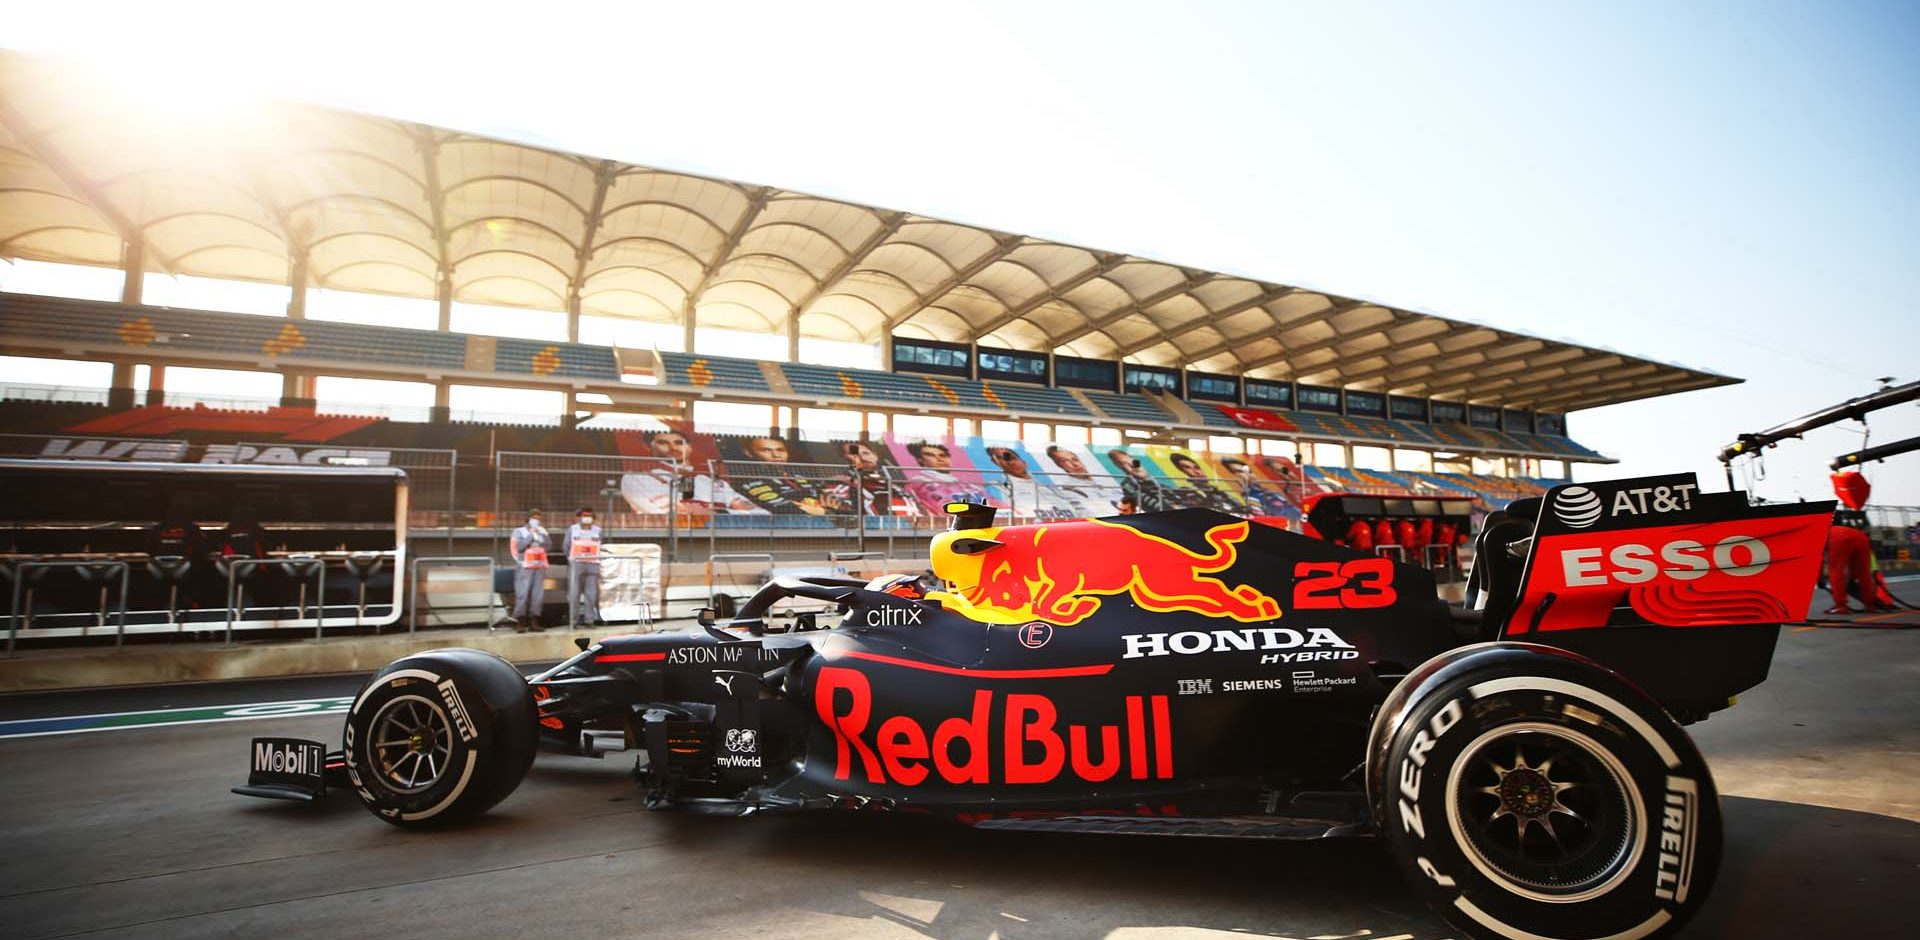 ISTANBUL, TURKEY - NOVEMBER 13: Alexander Albon of Thailand driving the (23) Aston Martin Red Bull Racing RB16 leaves the garage during practice ahead of the F1 Grand Prix of Turkey at Intercity Istanbul Park on November 13, 2020 in Istanbul, Turkey. (Photo by Bryn Lennon/Getty Images)